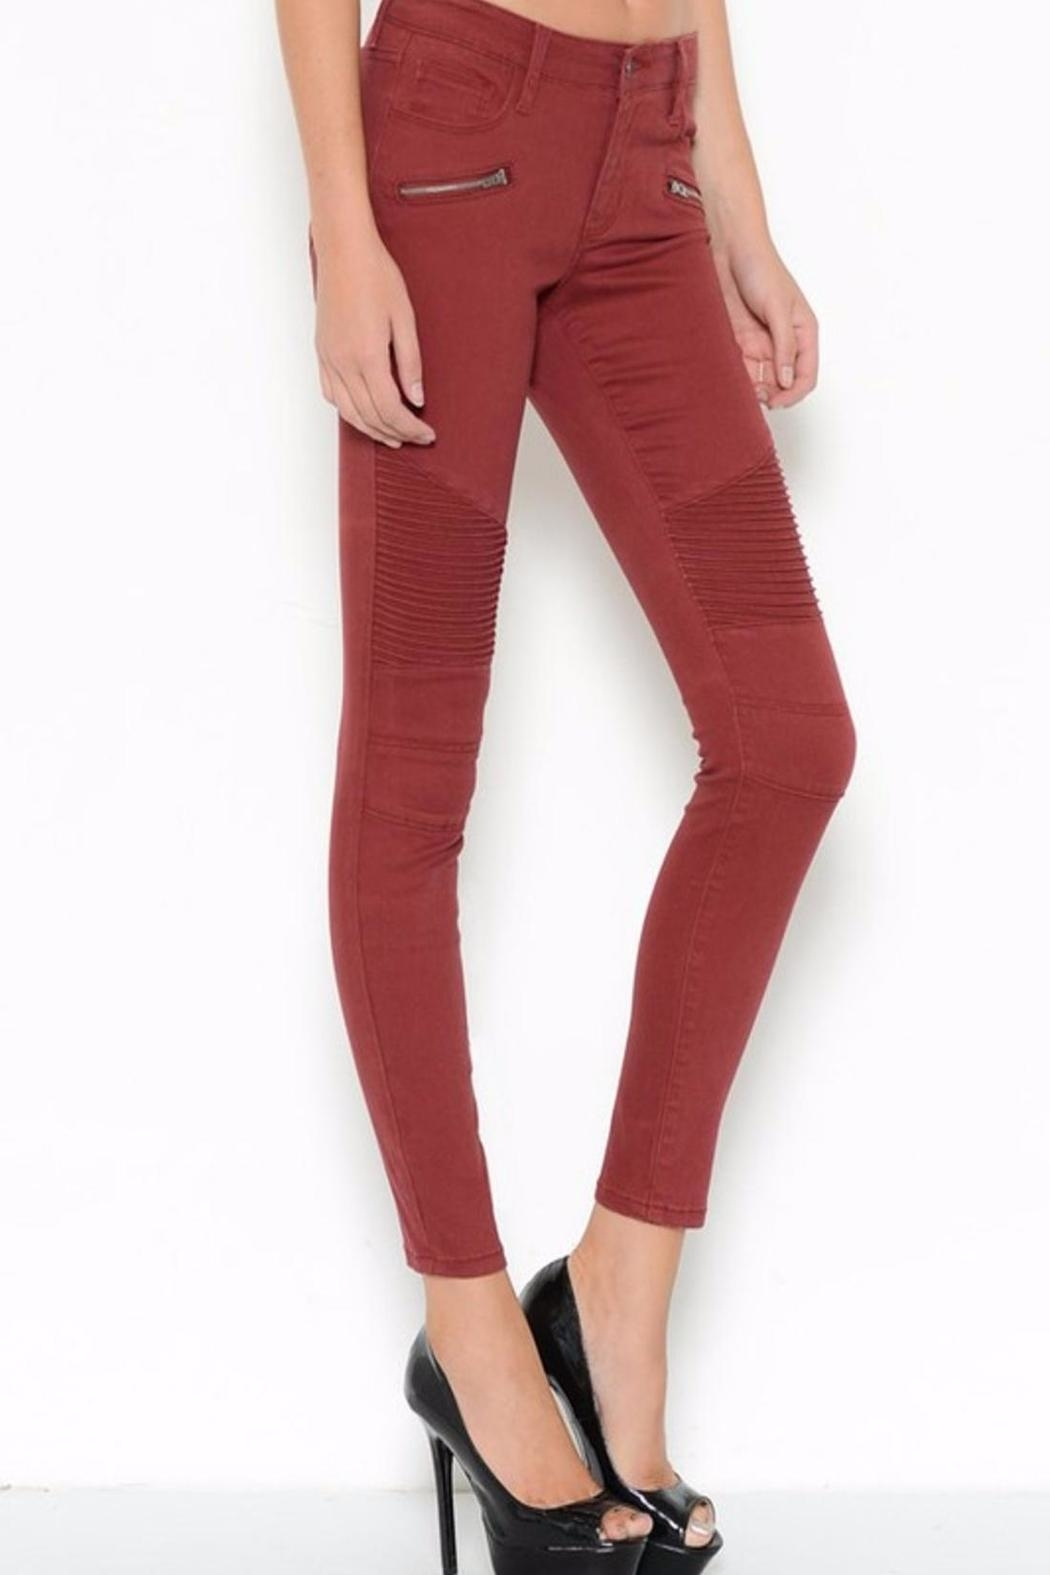 Cello Jeans Burgandy Skinny Jeans - Side Cropped Image